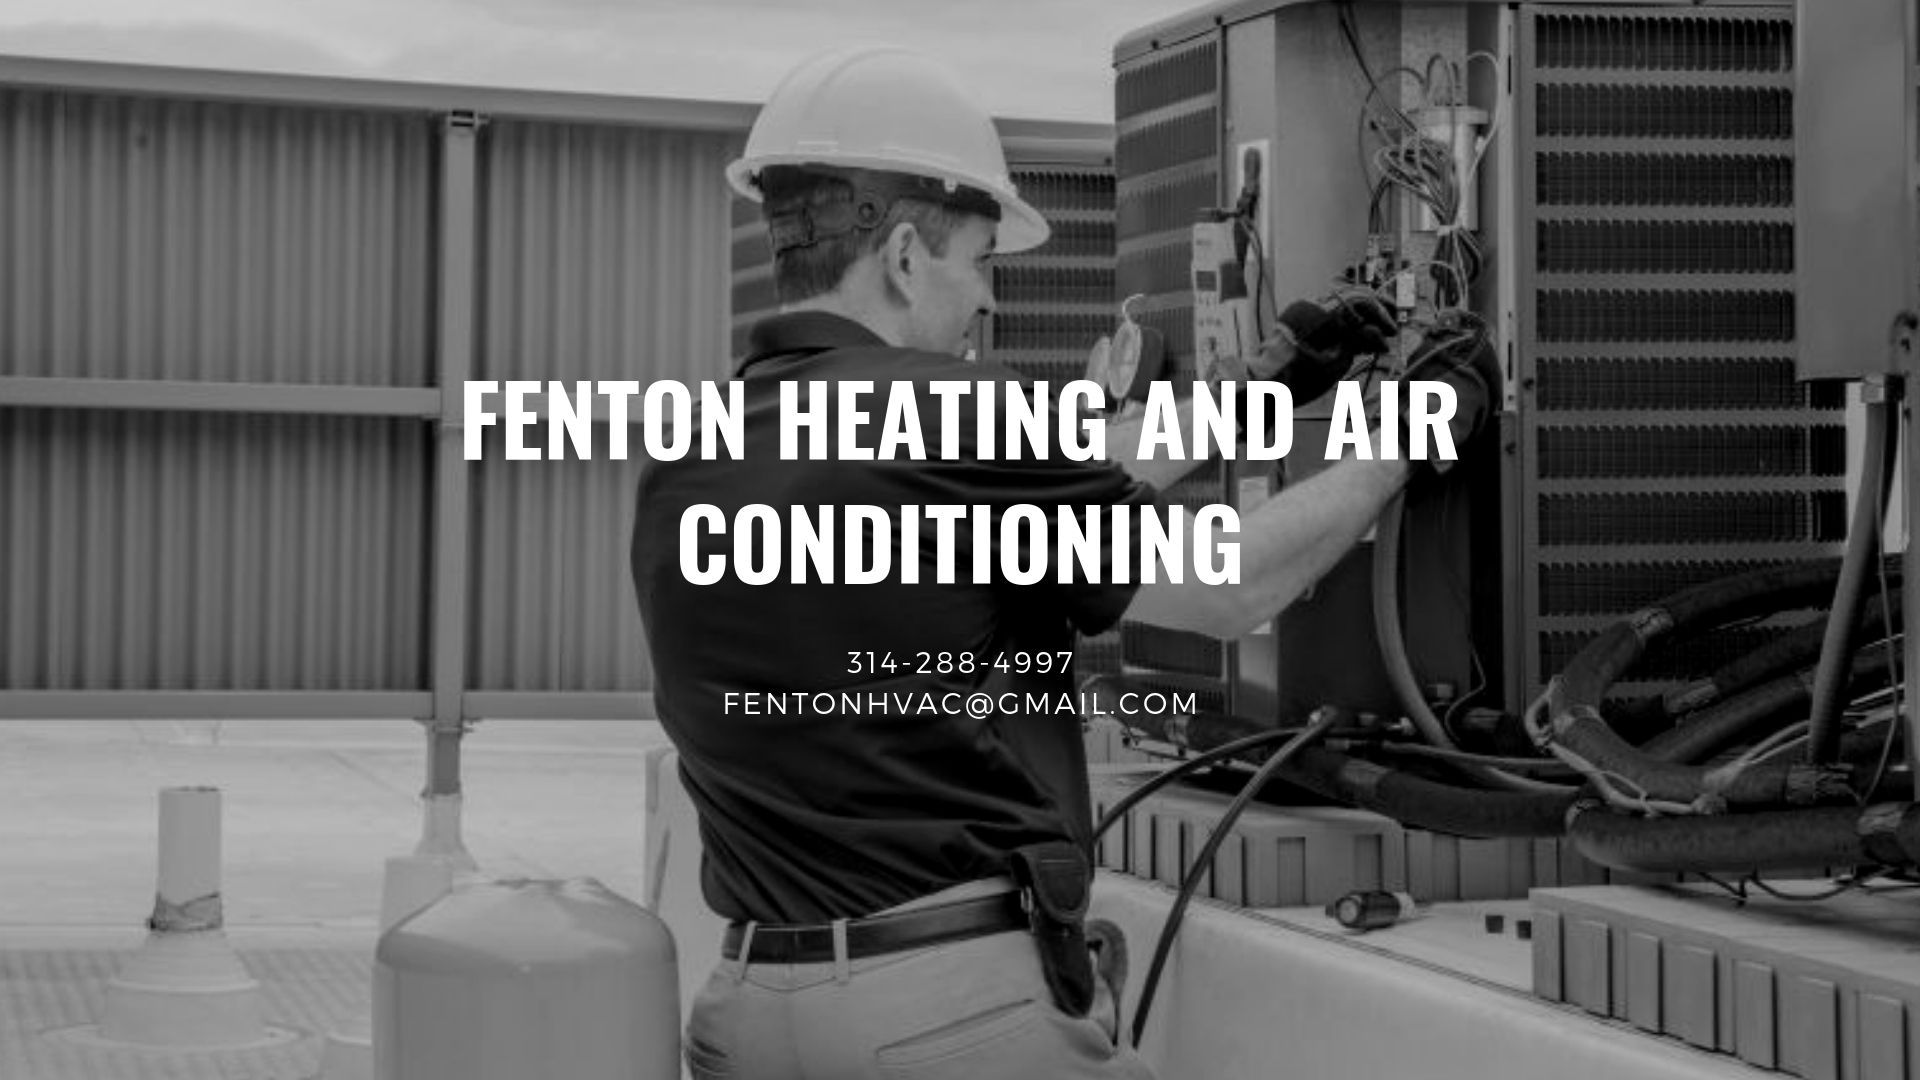 Fenton Heating And Air Conditioning Are The Most Reliable And